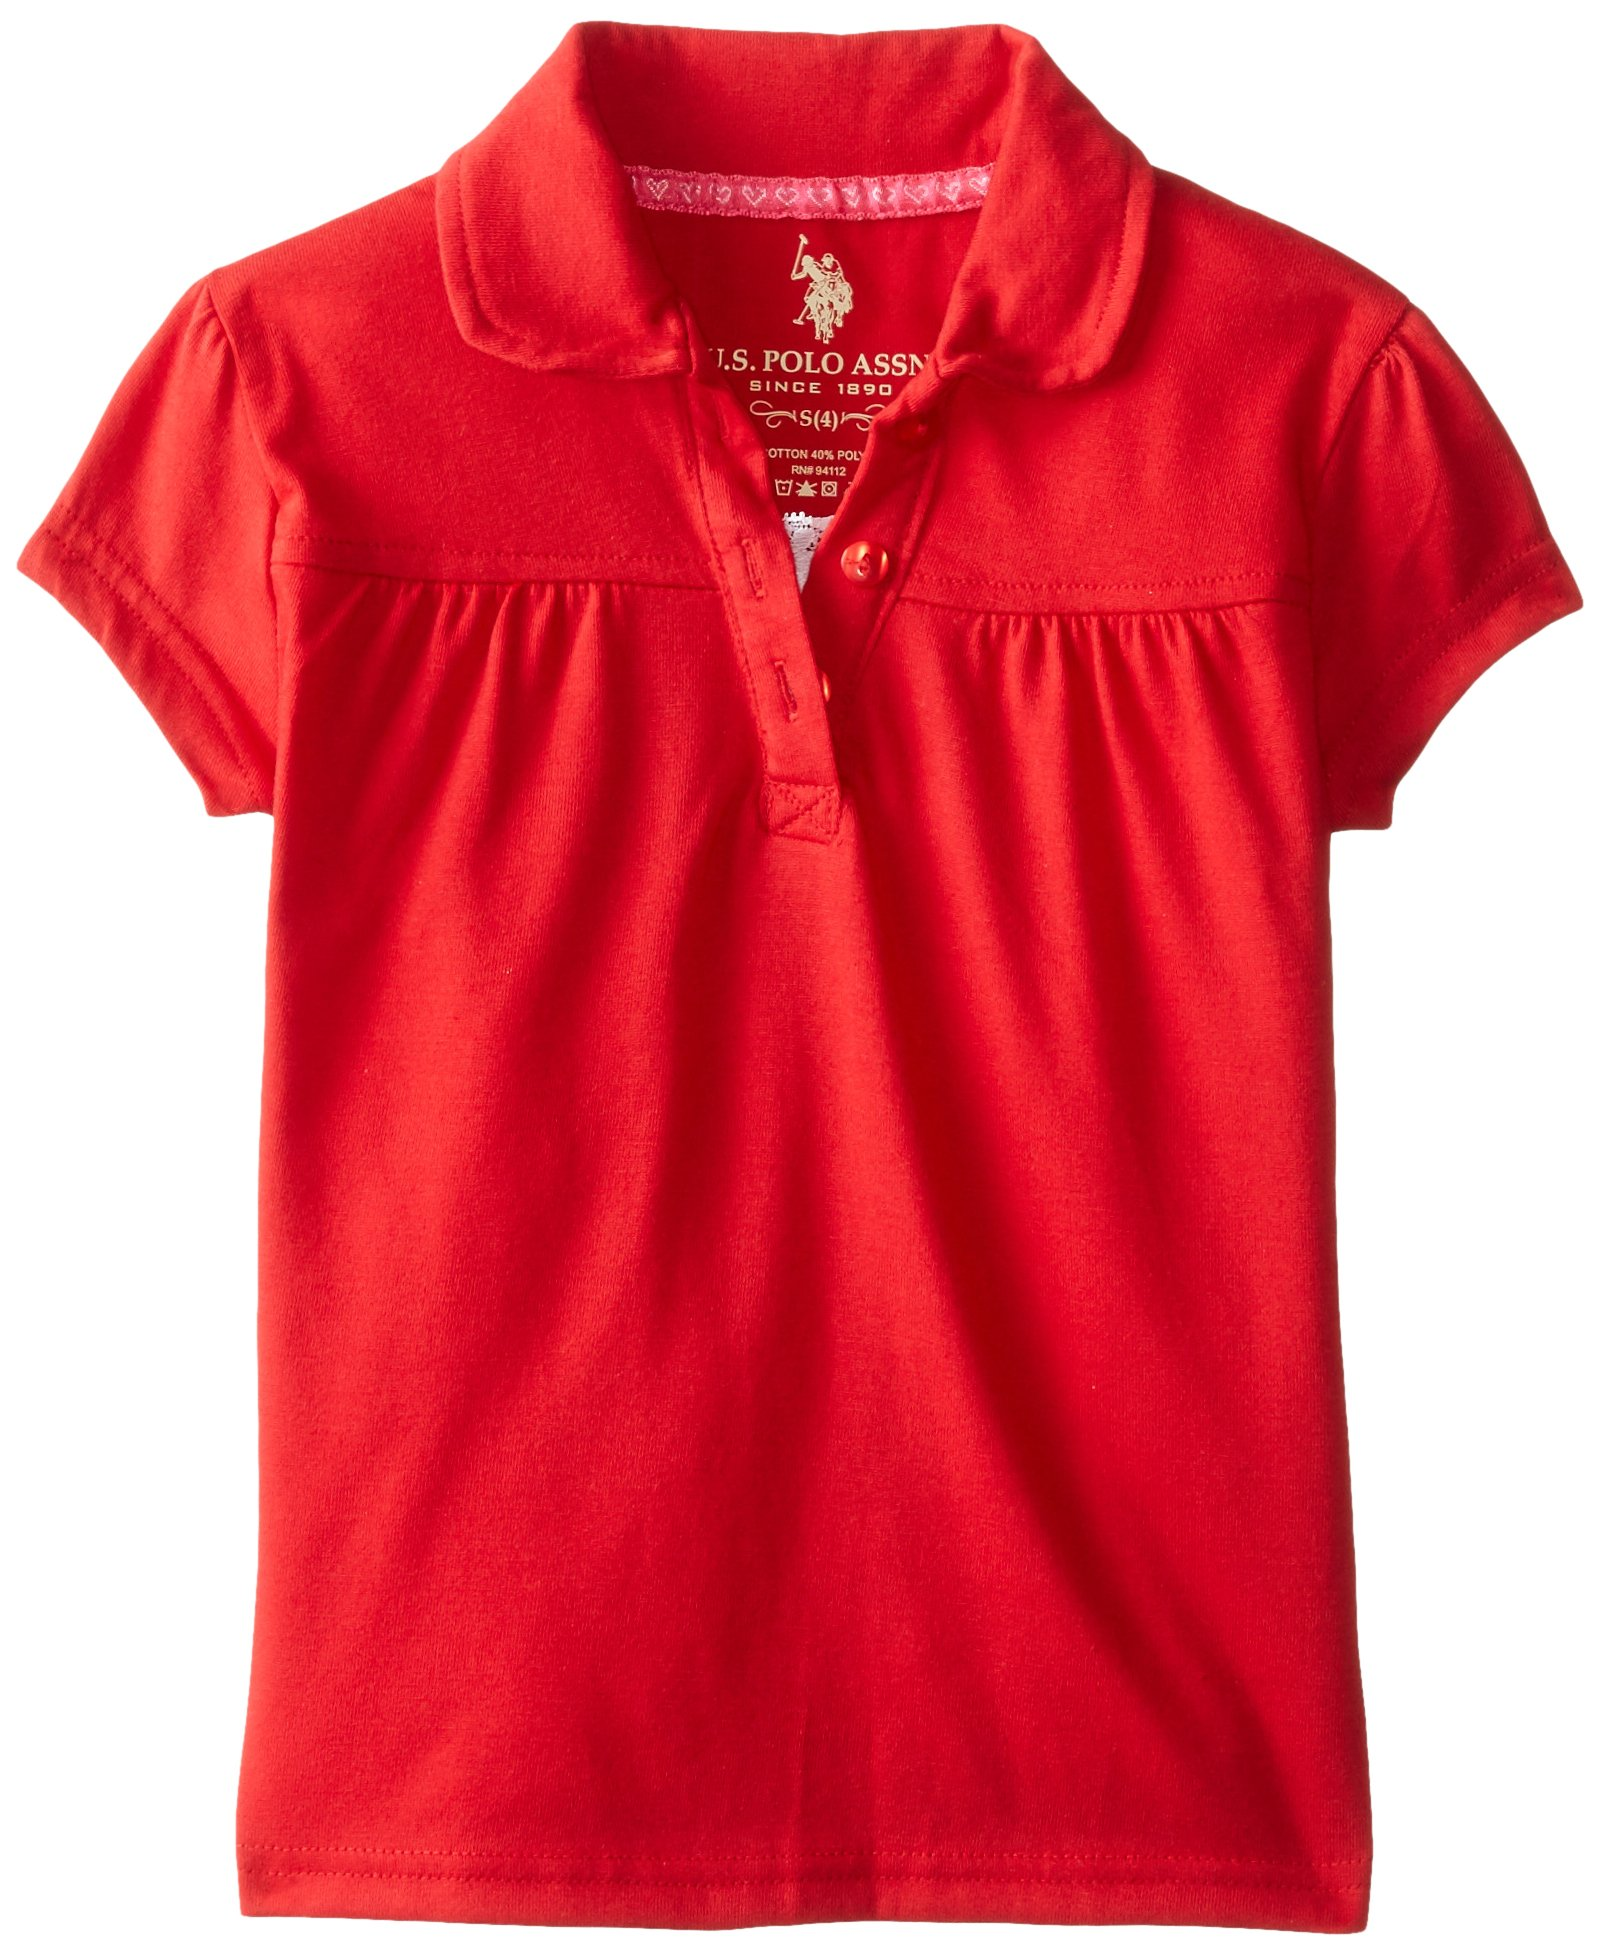 U.S. Polo Assn. Little Girls' Polo Shirt (More Styles Available), Jersey Engine Red-IJTCG, 5/6 by U.S. Polo Assn. (Image #1)